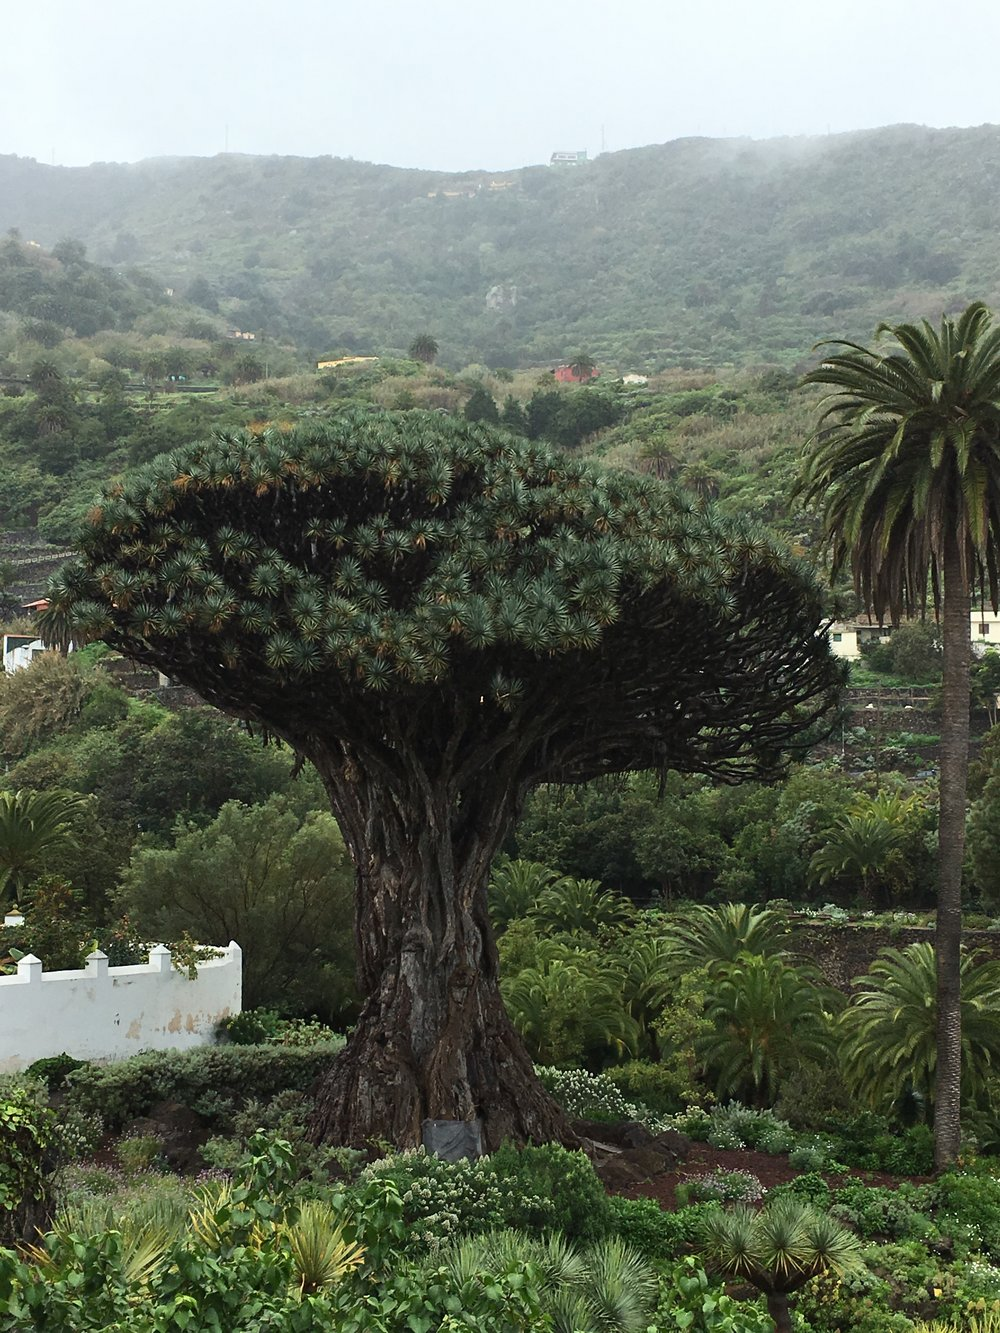 835 year old Dragon Tree.